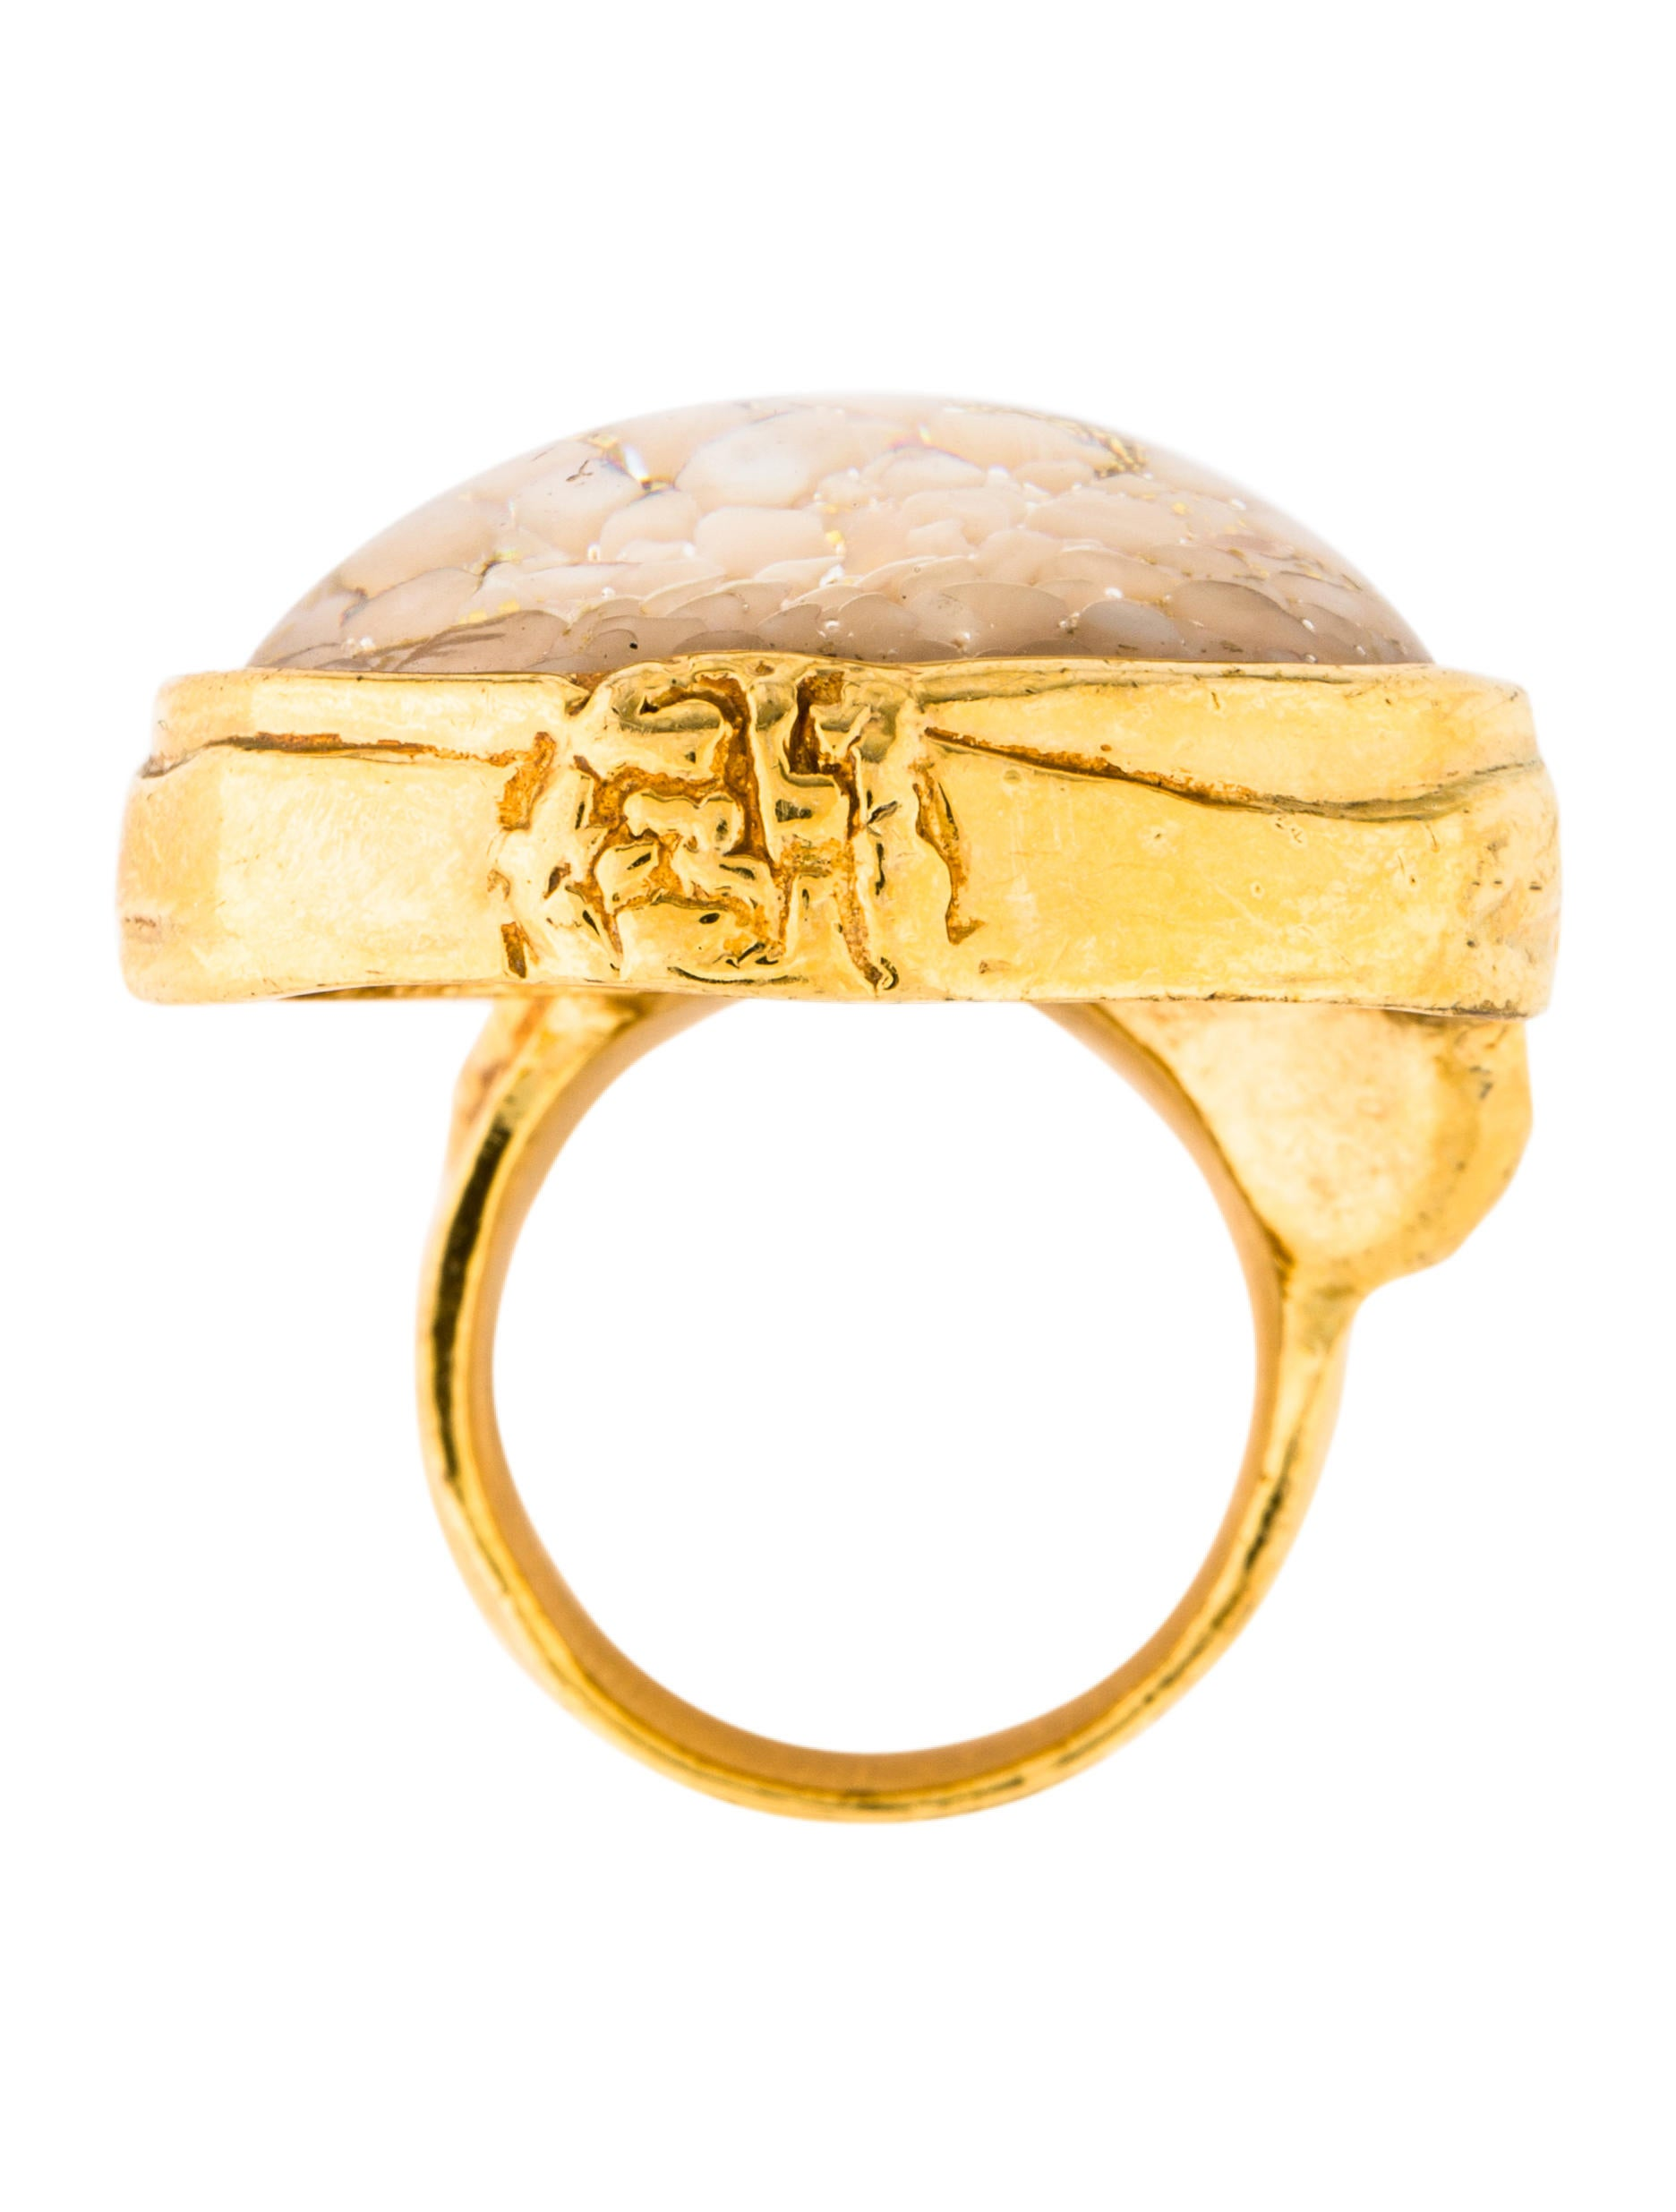 incisione studio and technique gold rings florence traforo contemporary pin florentine bulino a arty naa yellow traditional engagement jewelry